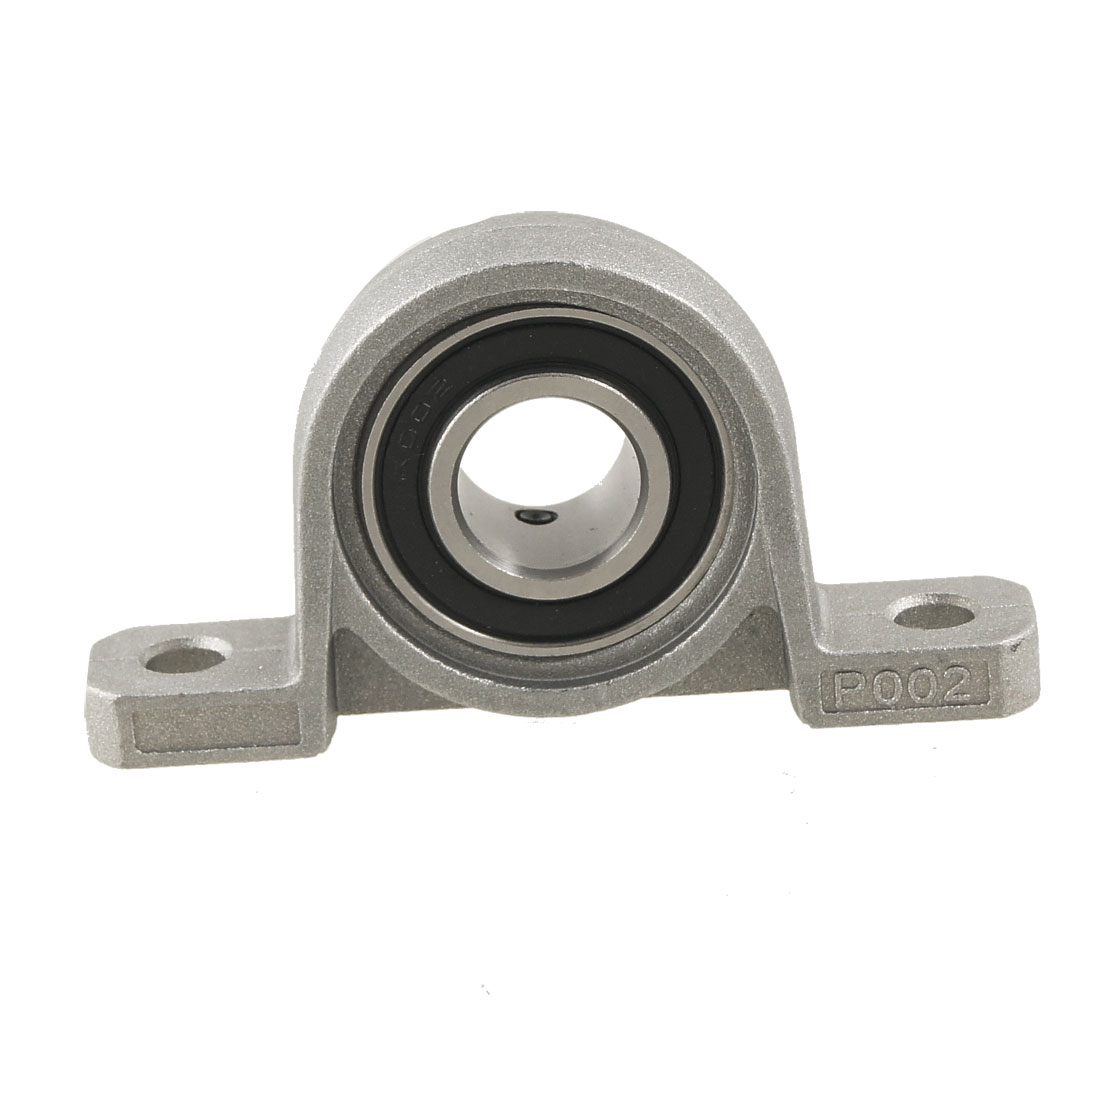 P002 15mm Bore Self-aligning Vertical Mounted Flange Bearing K002